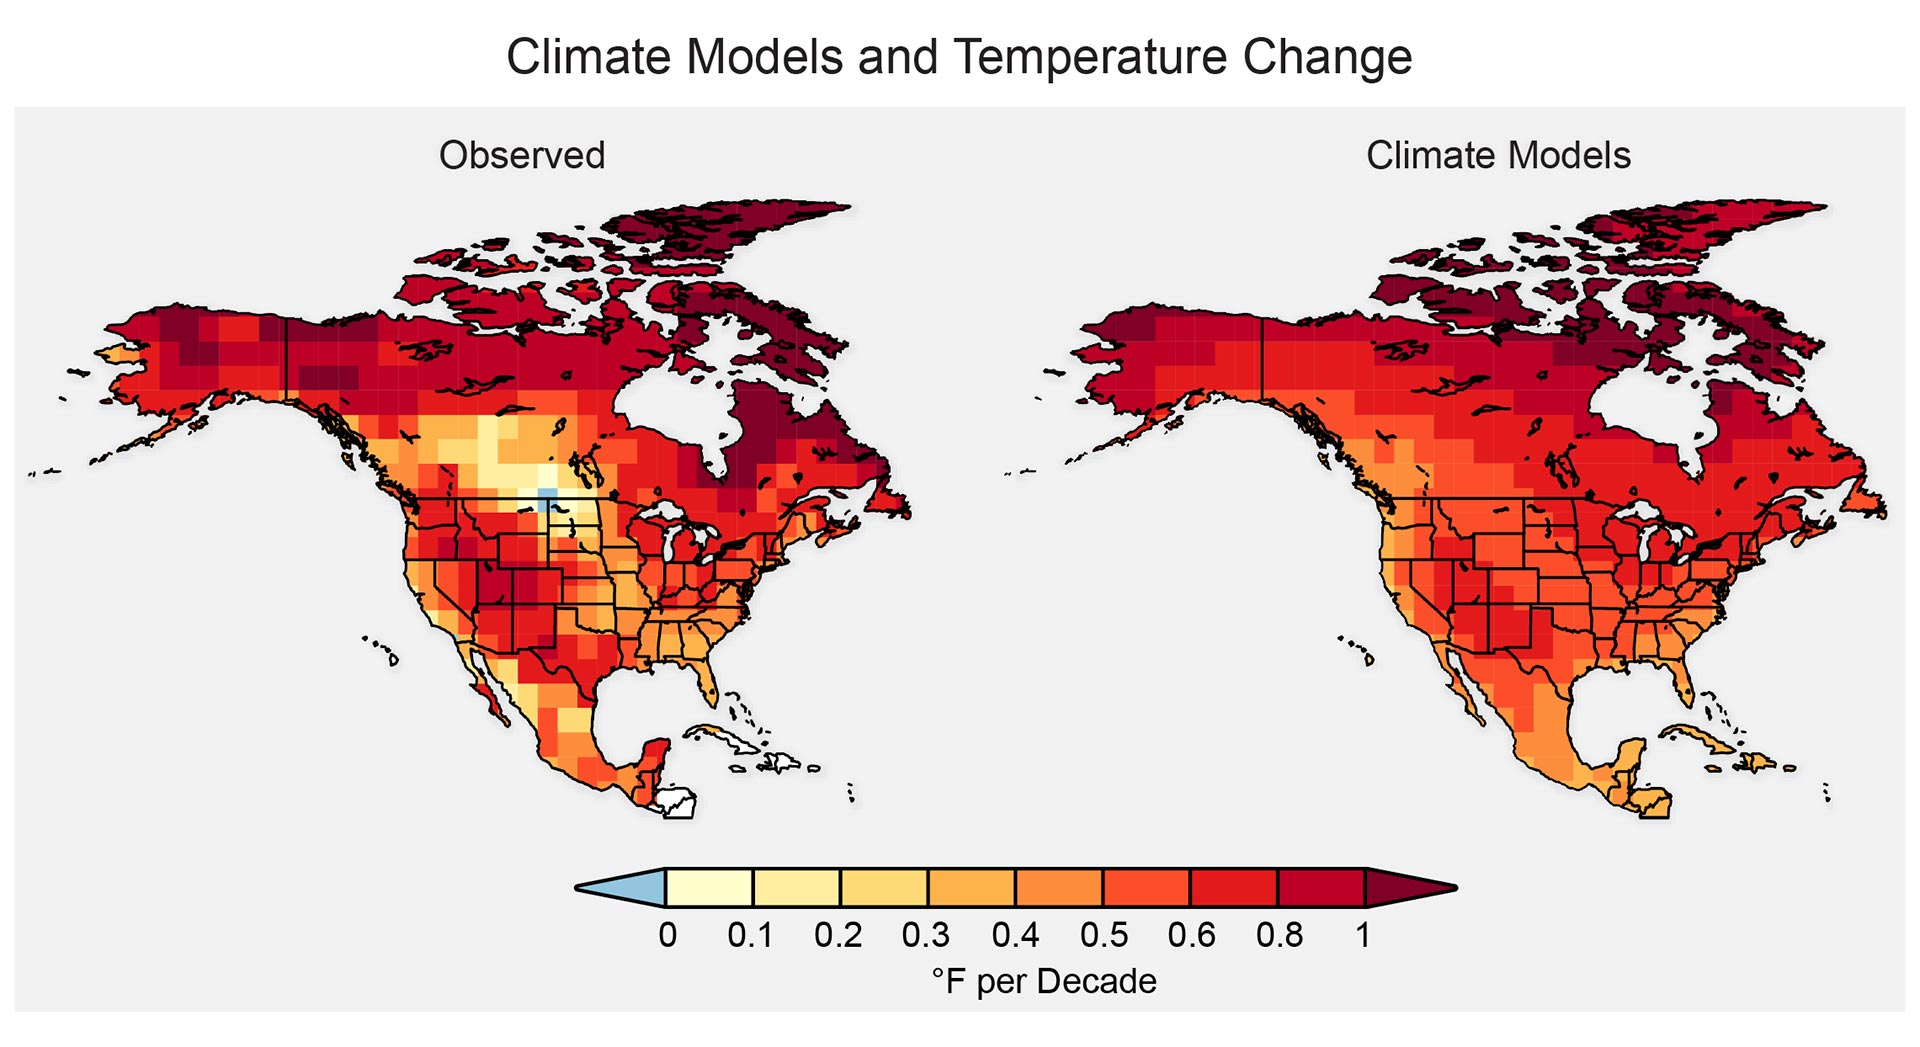 Can anyone tell me the recent developments in climate models?